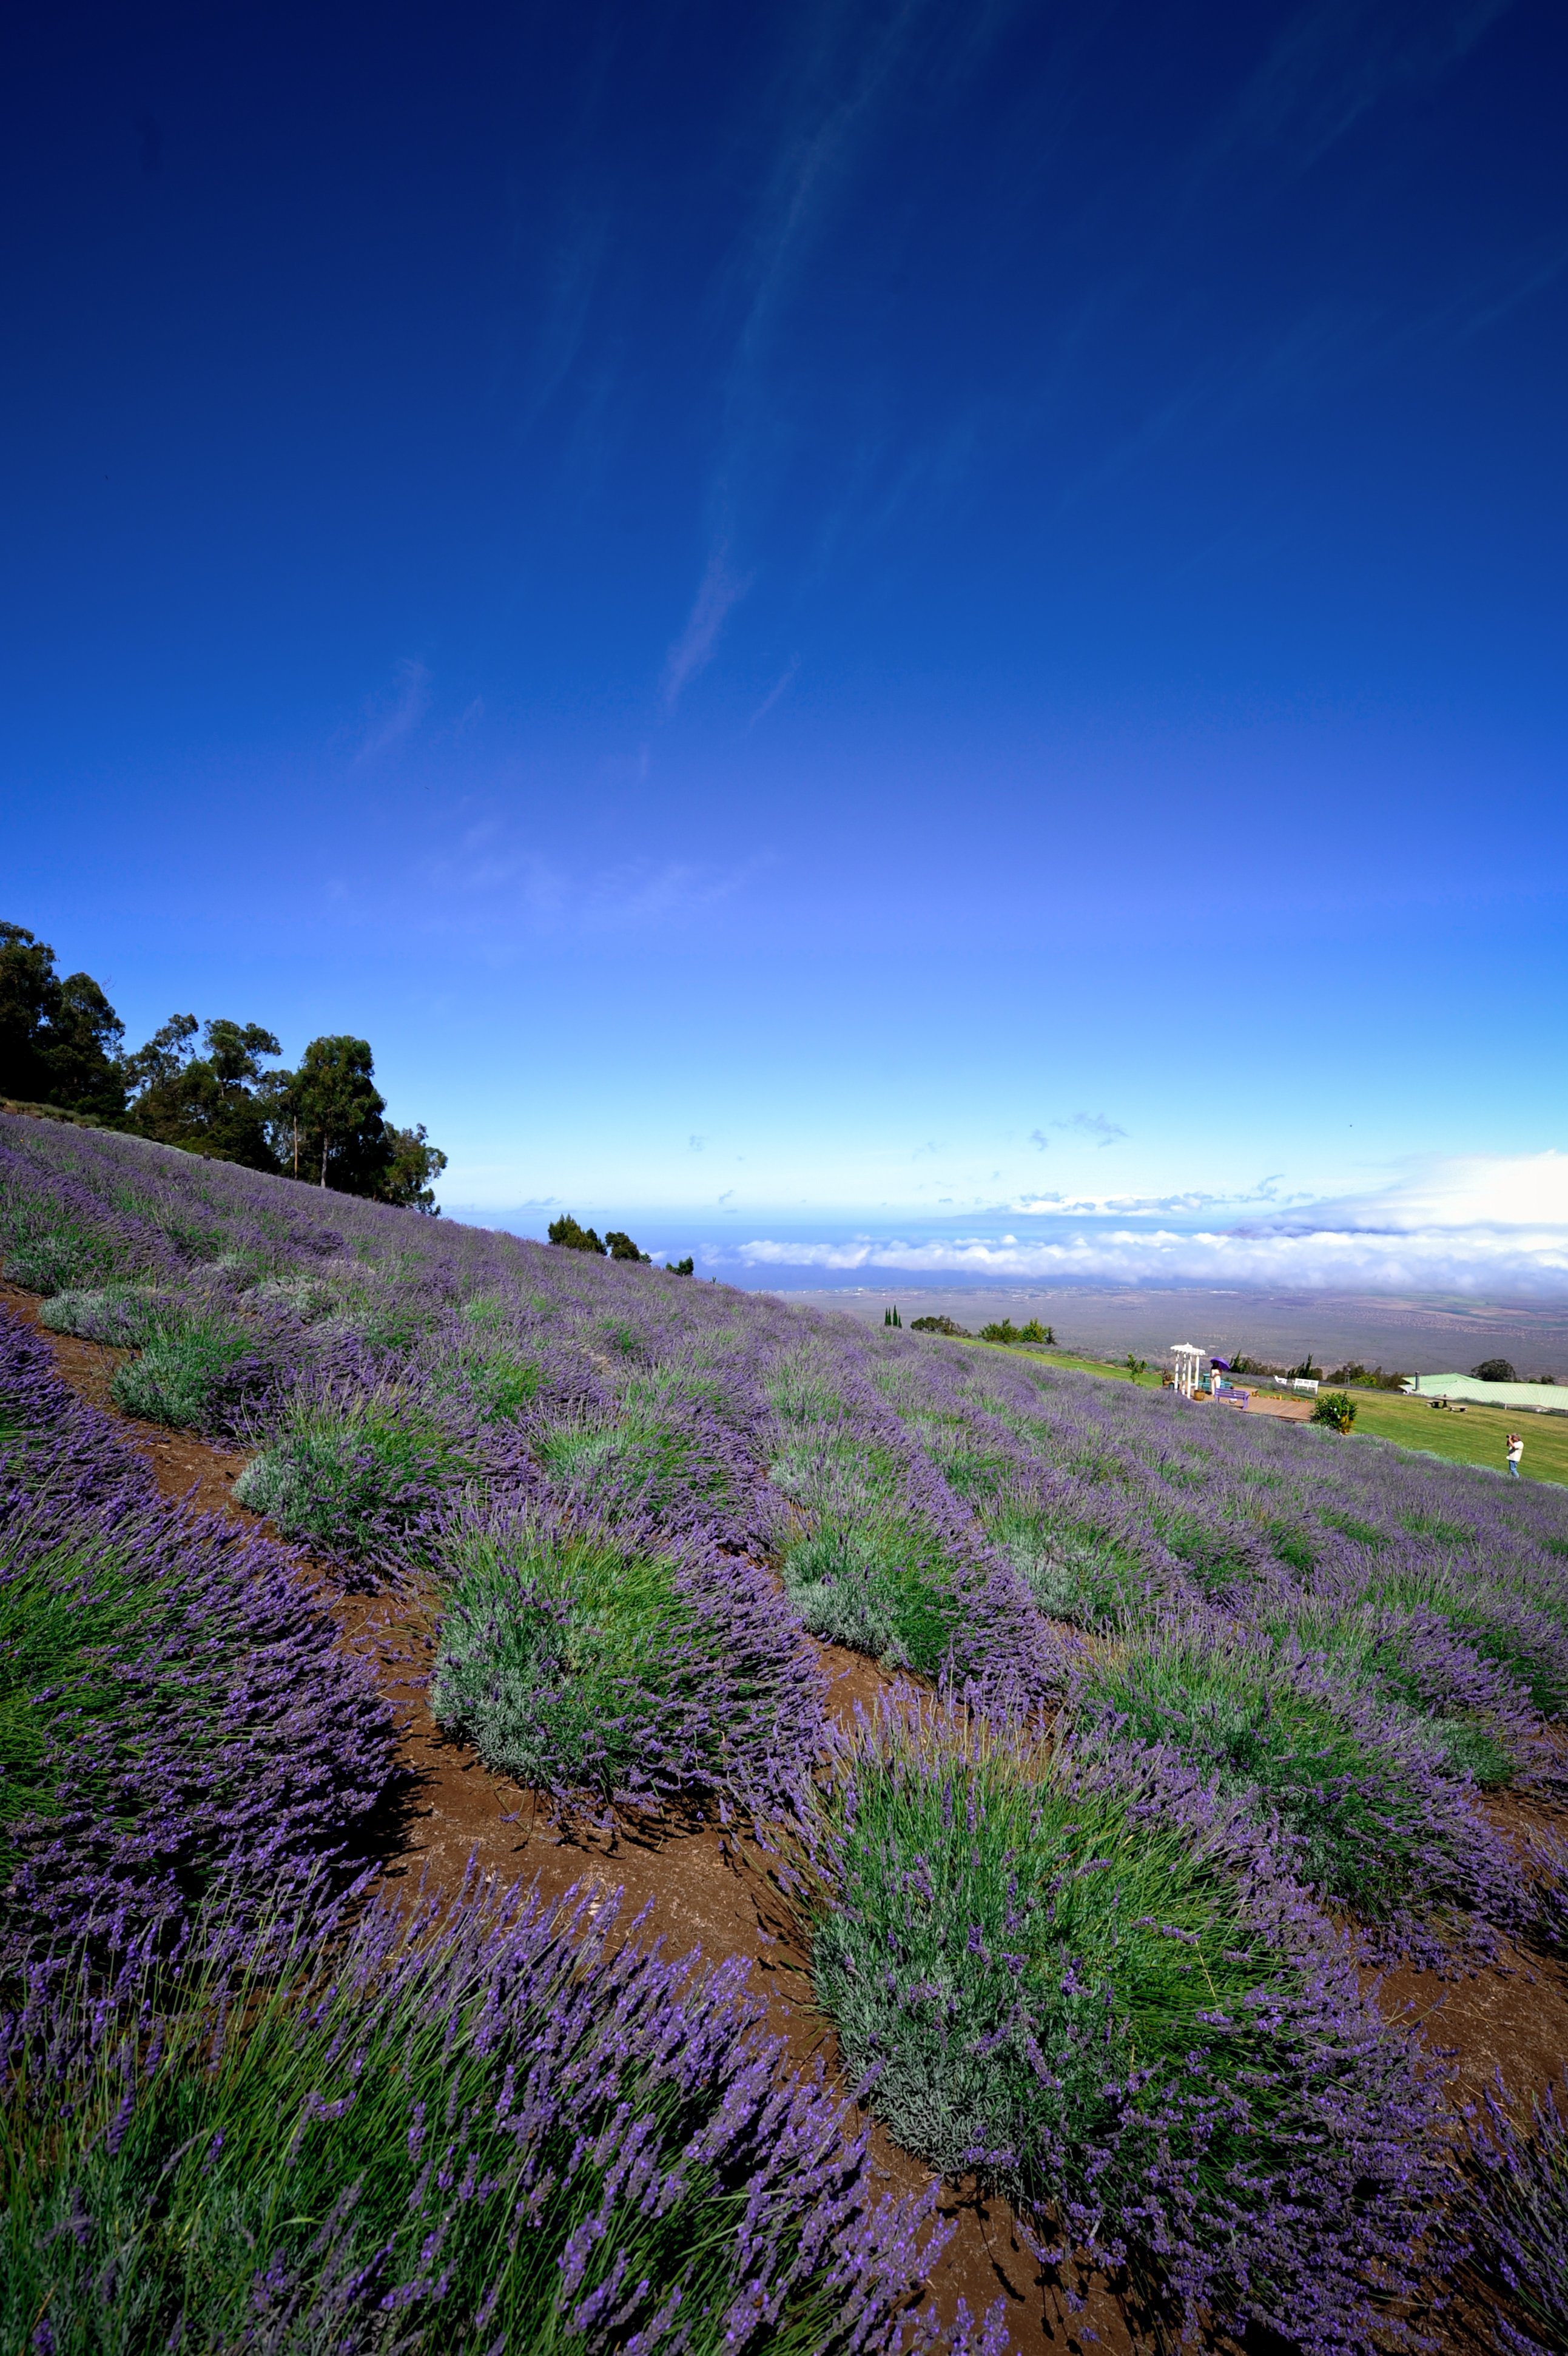 Fields of lavender overlooking the Pacific Ocean at Ali'i Kula Lavender Farm in Maui, Hawaii. (Photo: Courtesy of Ali'i Kula Lavender Farm)